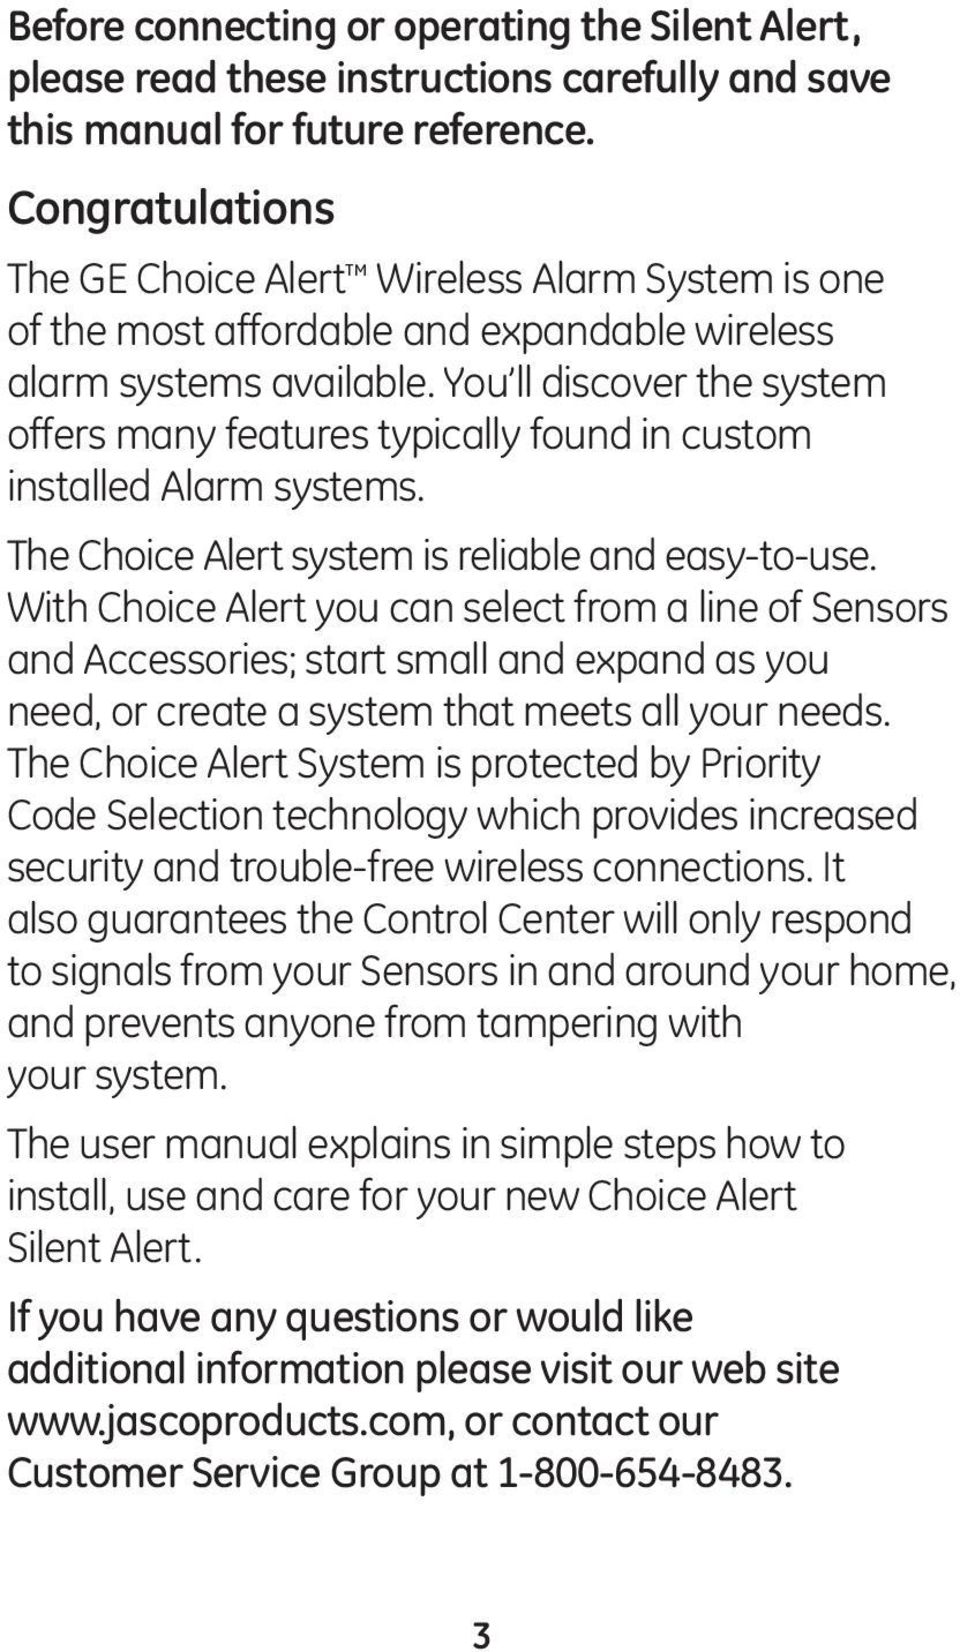 You ll discover the system offers many features typically found in custom installed Alarm systems. The Choice Alert system is reliable and easy-to-use.